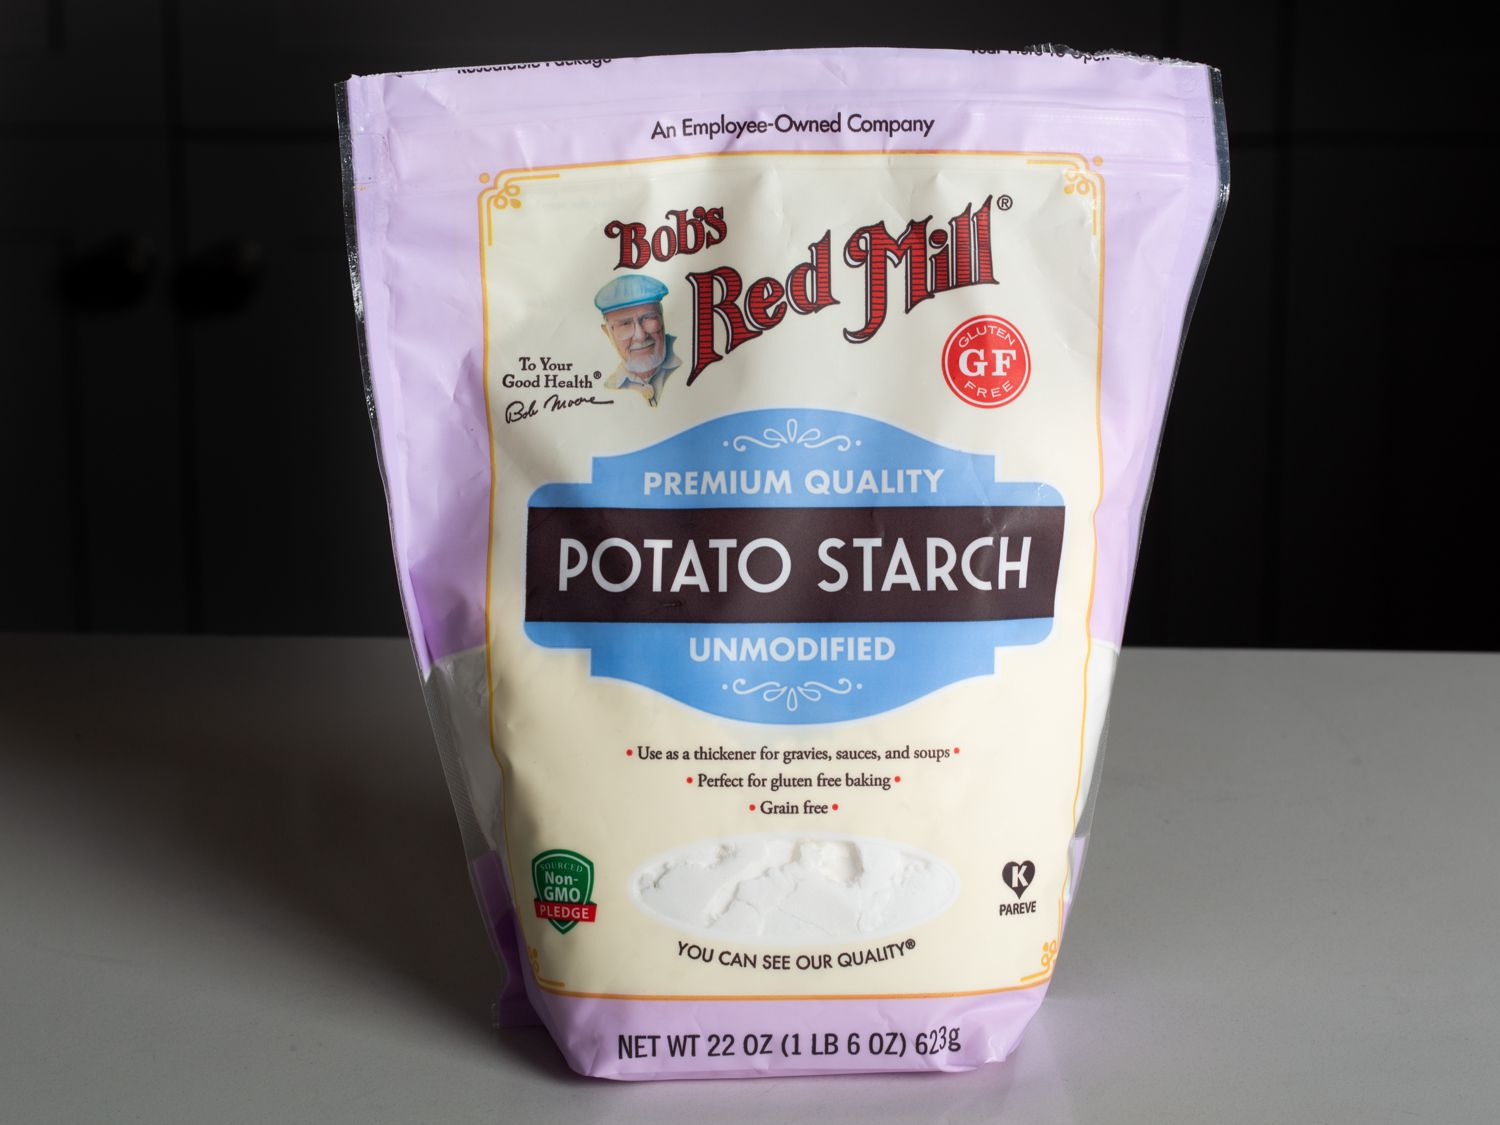 Bag of Bob's Red Mill Unmodified Potato Starch on a counter with a black background